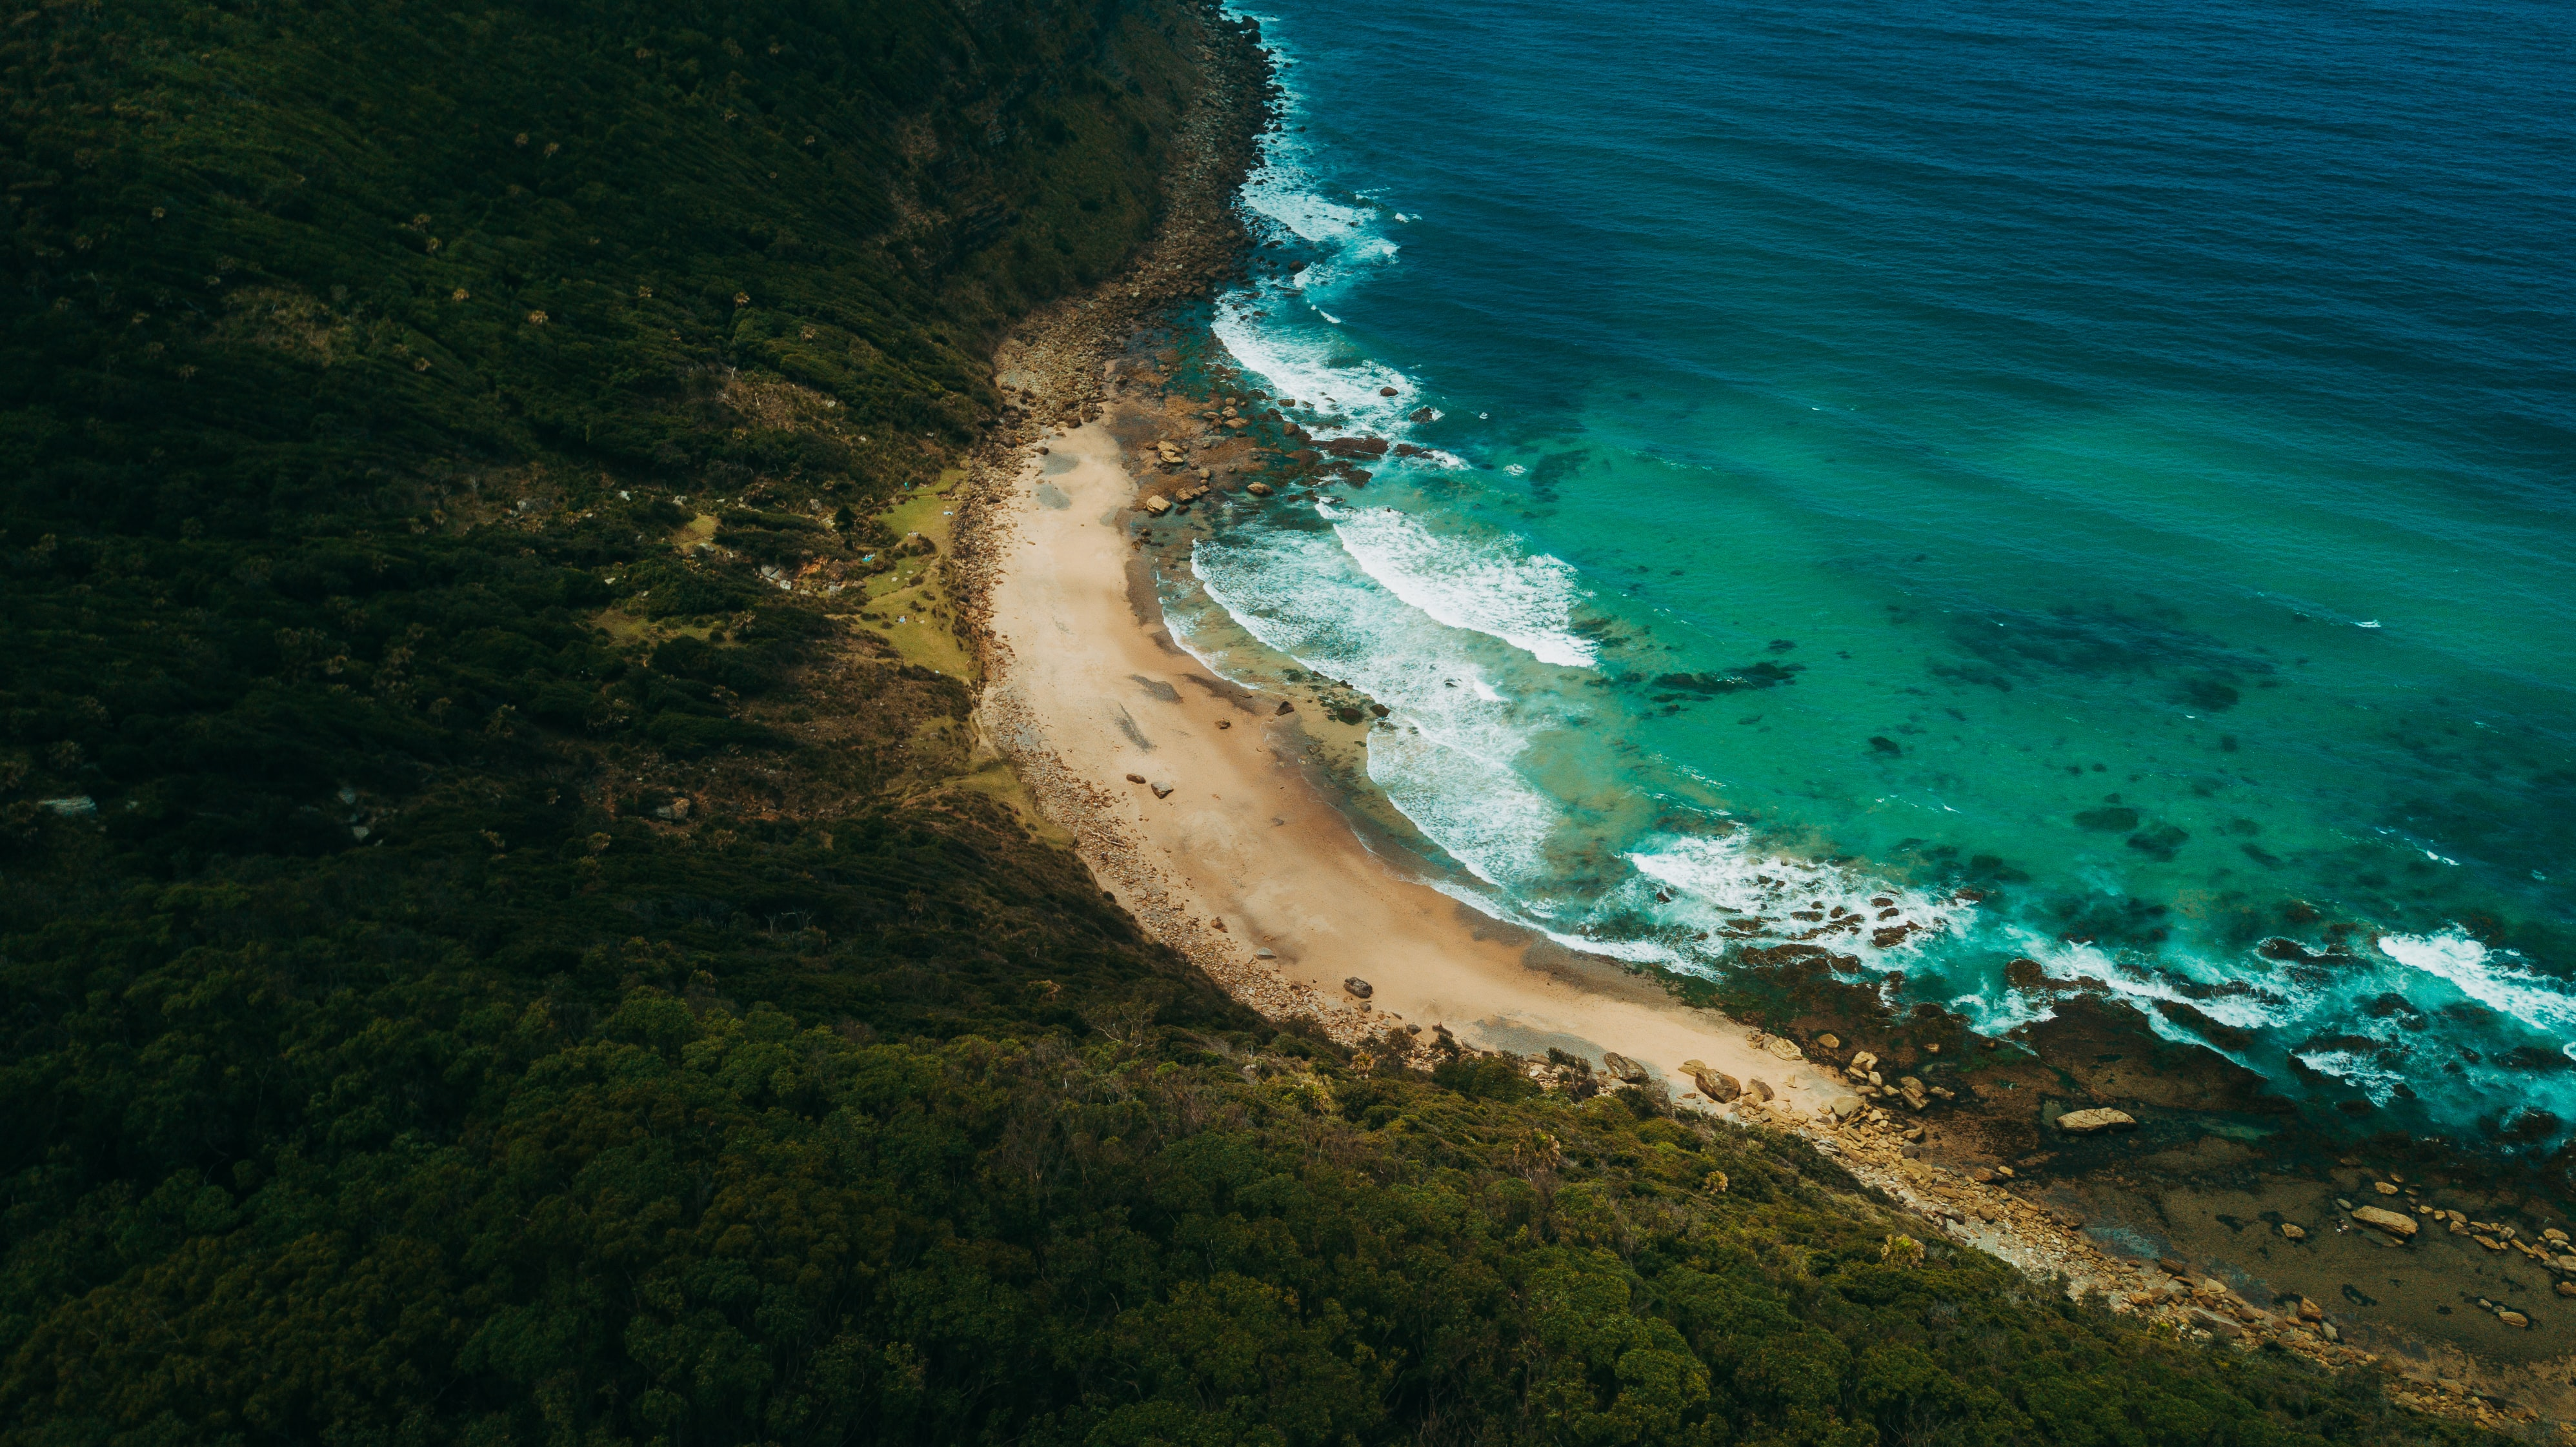 ocean waves at daytime aerial photography